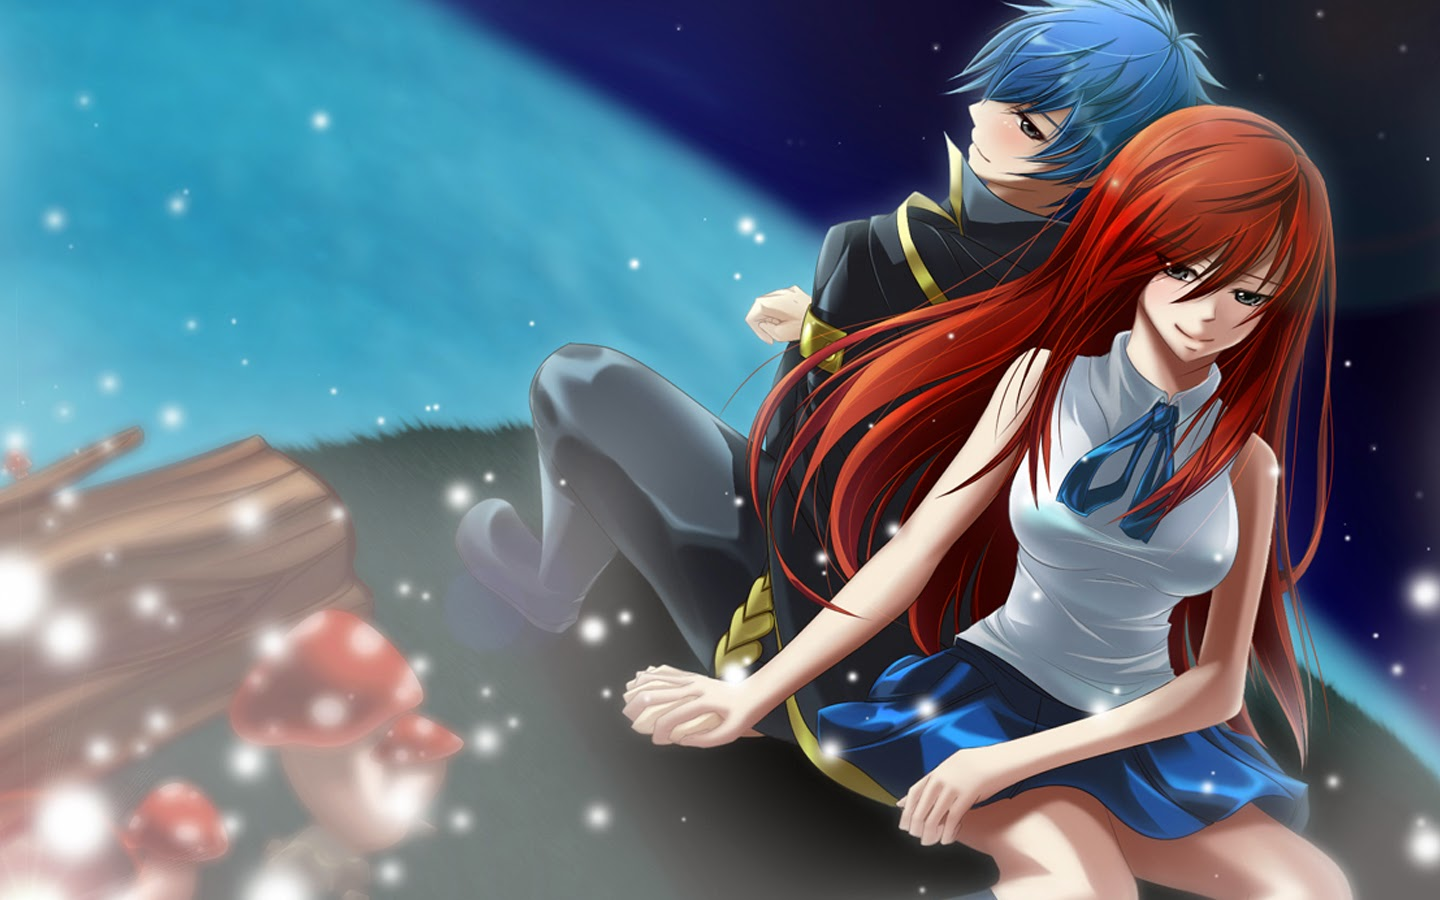 Sweet couple holding hands anime fairy tail hd wallpaper a12